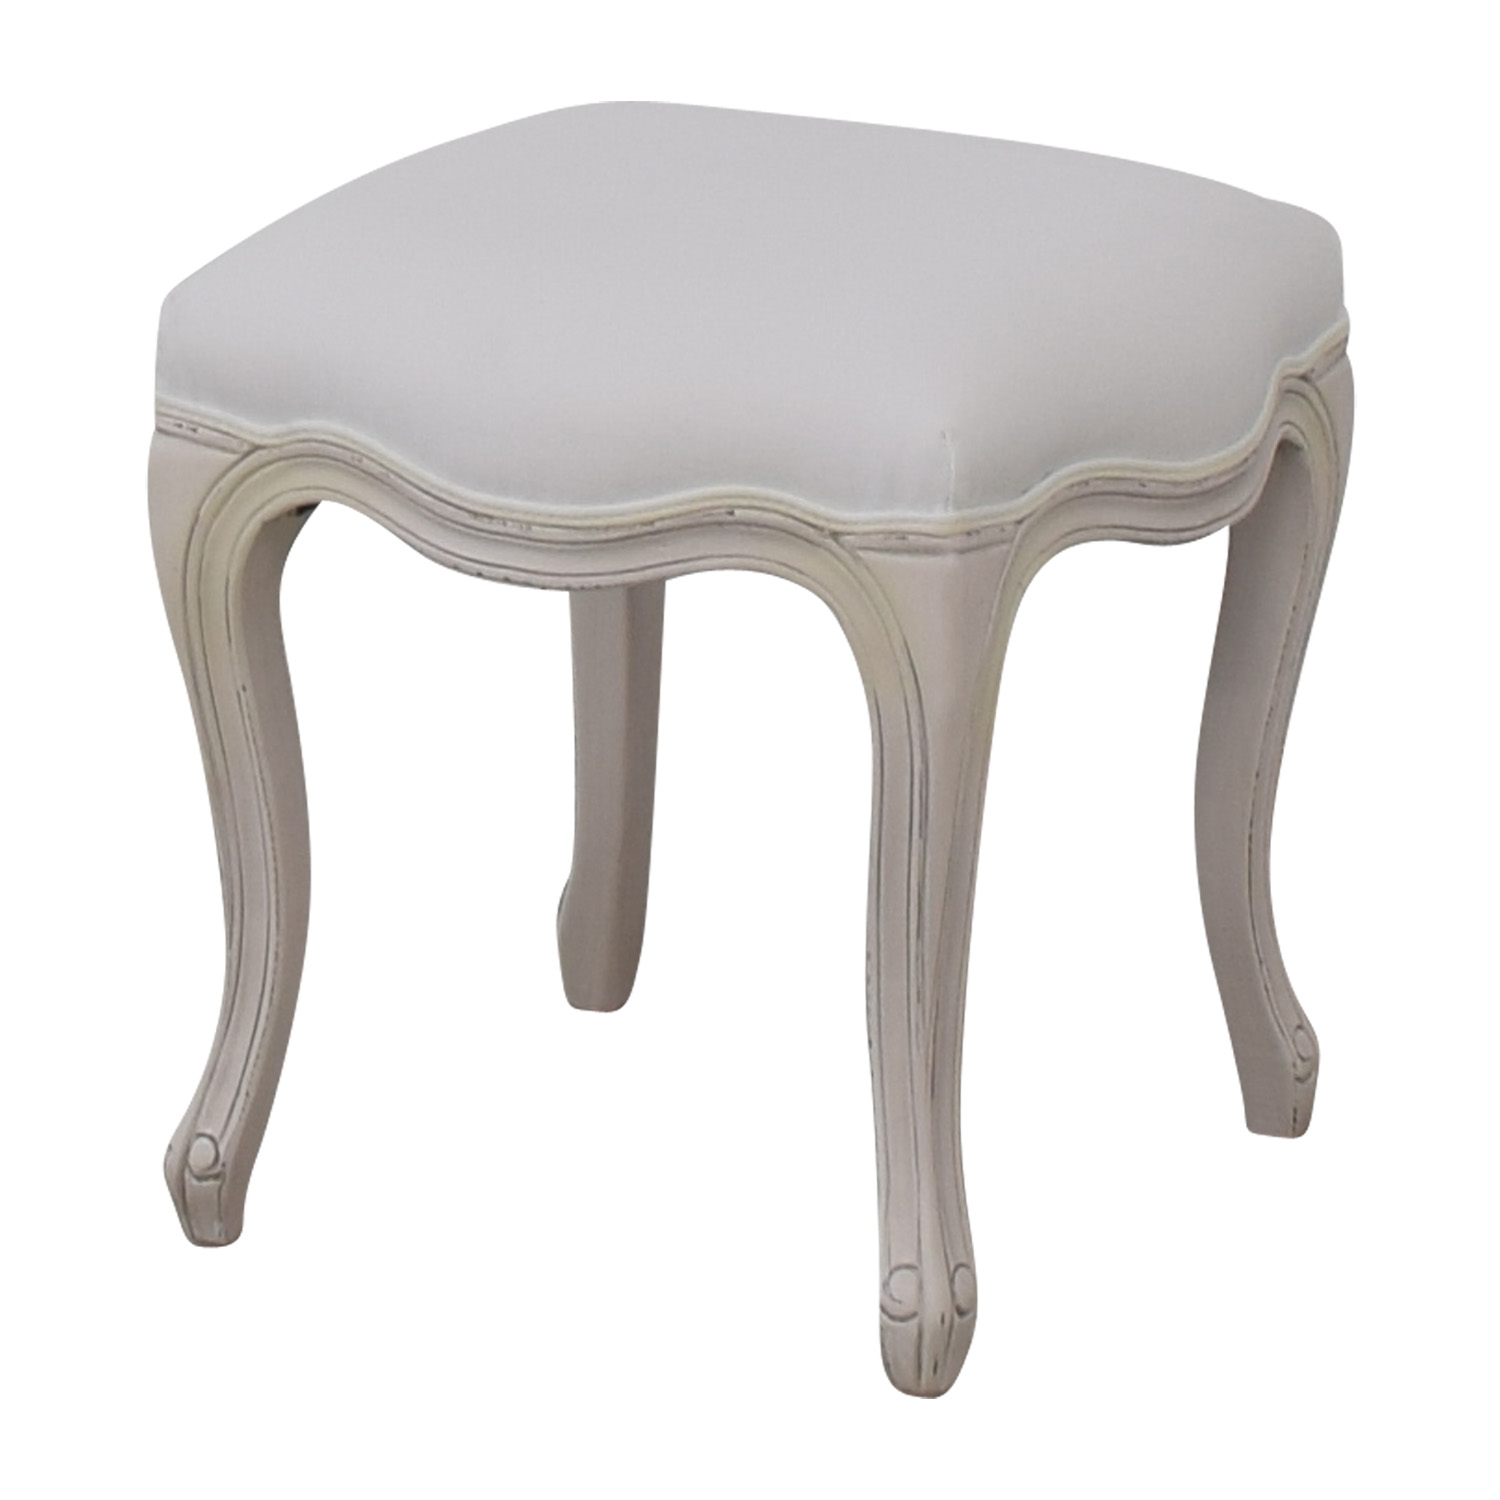 Restoration Hardware Restoration Hardware Sophie Upholstered Stool coupon